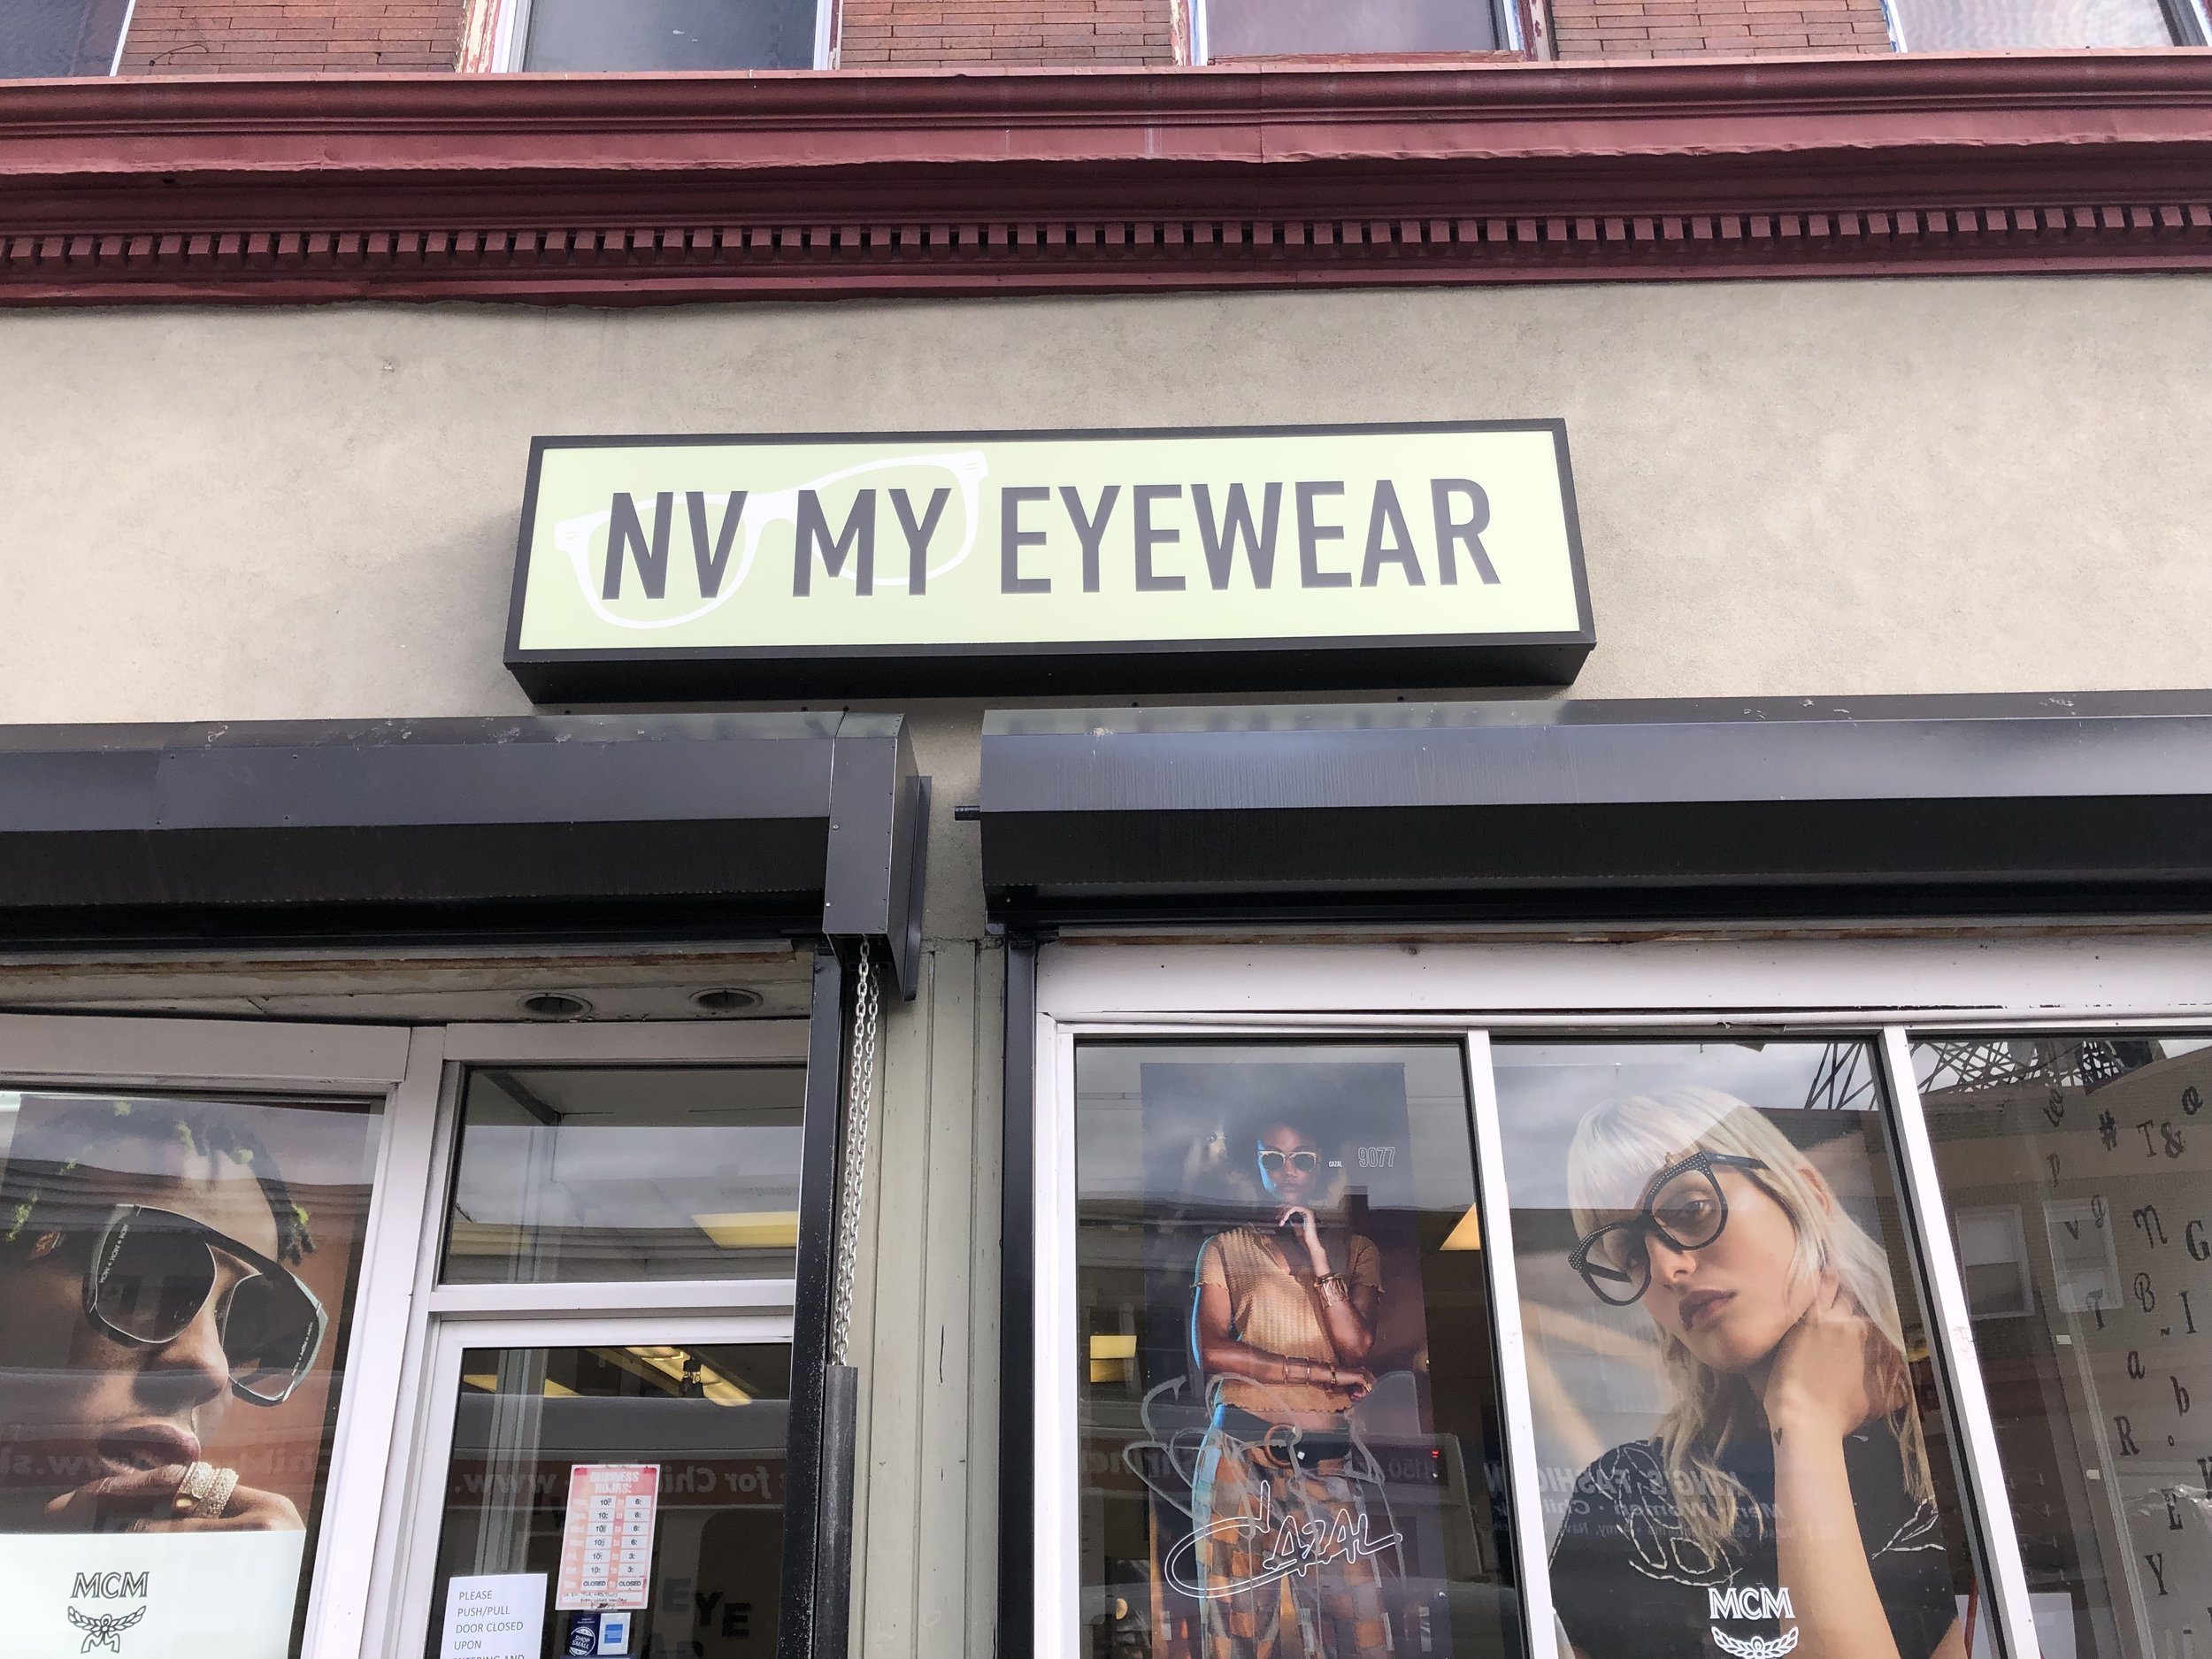 The front entrance of NV My Eyewear, located on 52nd St in Philadelphia, PA